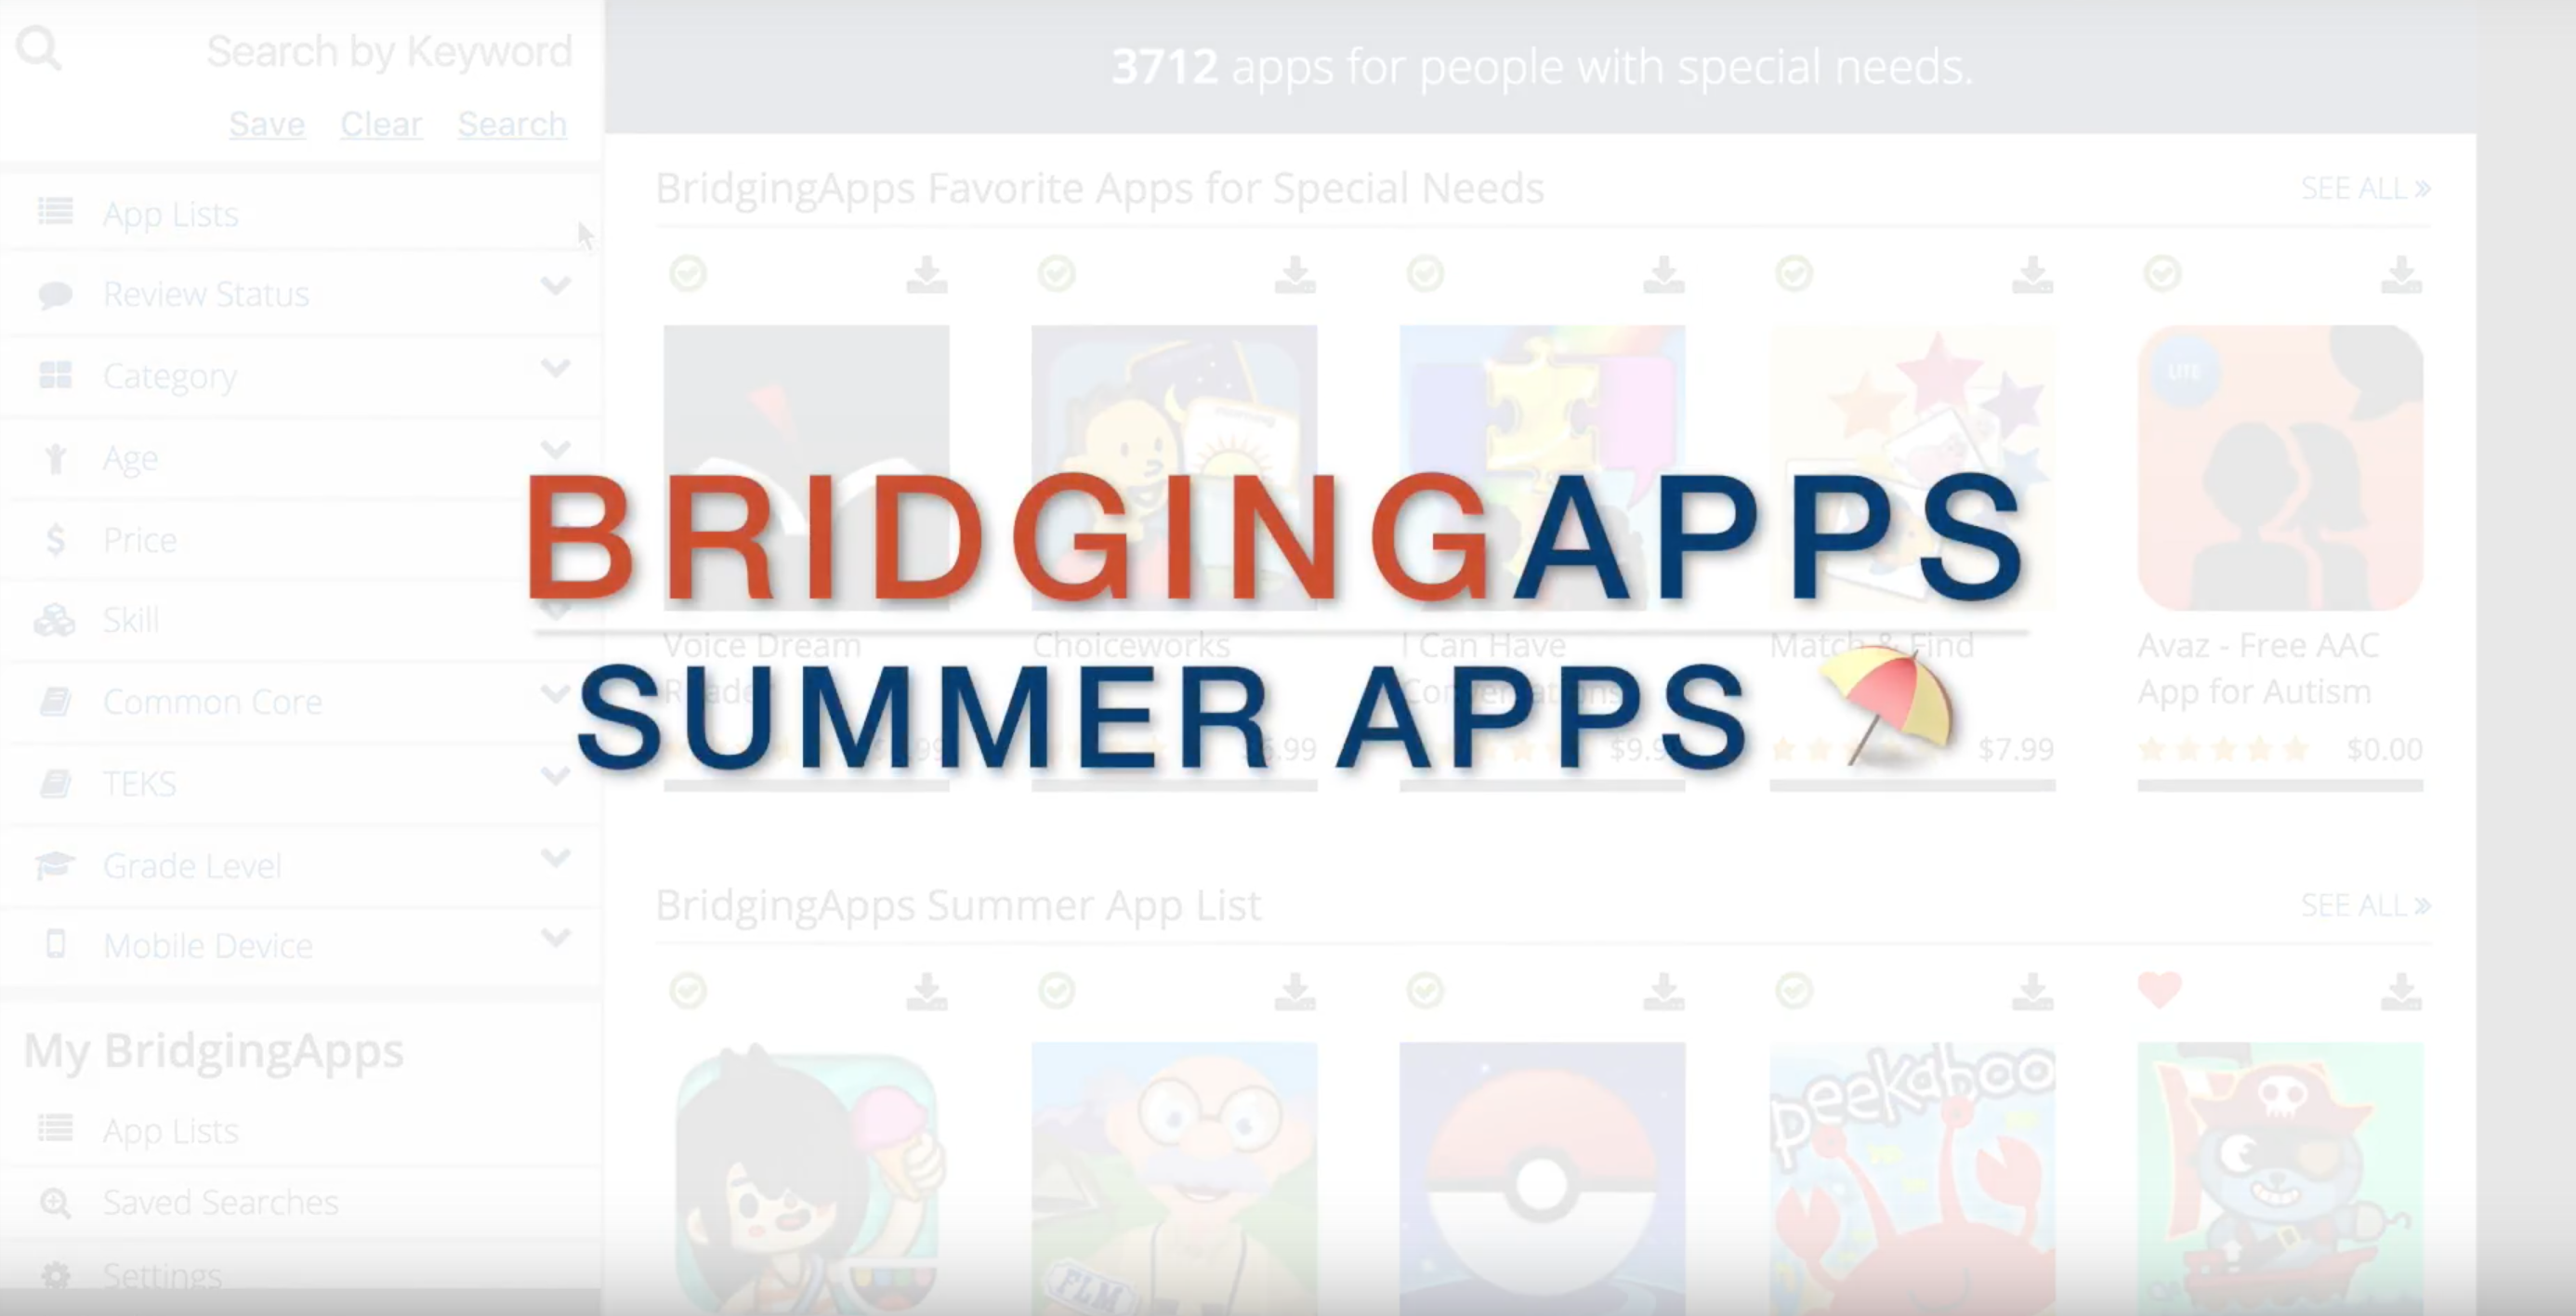 Summer App Search Image